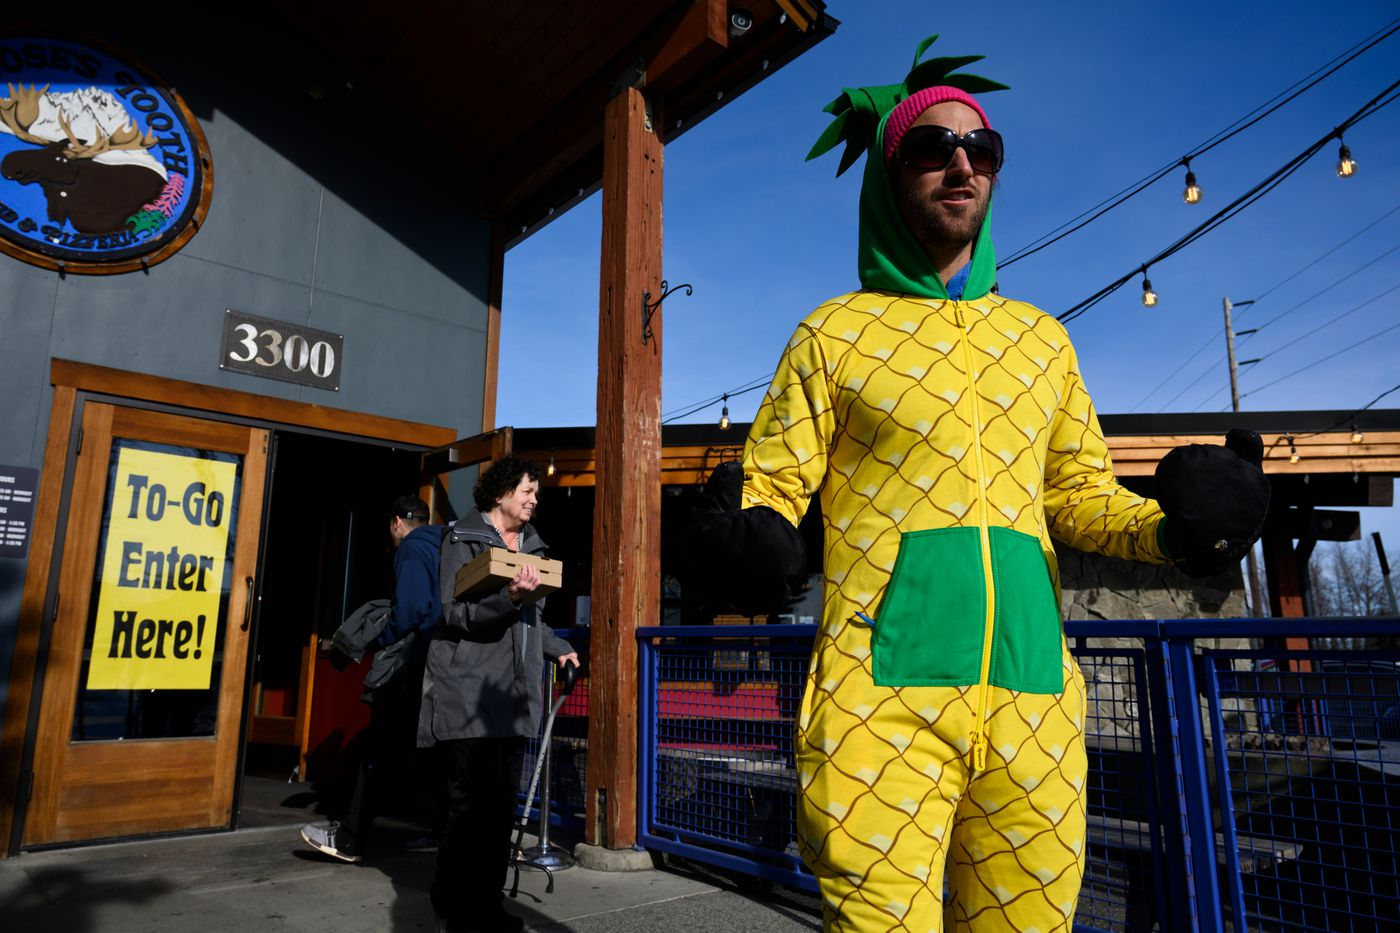 """Moose's Tooth bartender Josh Bleznak wears a pineapple costume and works as a doorman at the Midtown Anchorage restaurant on Friday, March 20, 2020. Bleznak's job is to keep the flow customers picking up orders to five at a time inside the restaruant. He also said he hopes to make people smile. """"Let's have people enjoy themselves in a time that kind of sucks,"""" Bleznak said. (Marc Lester / ADN)"""